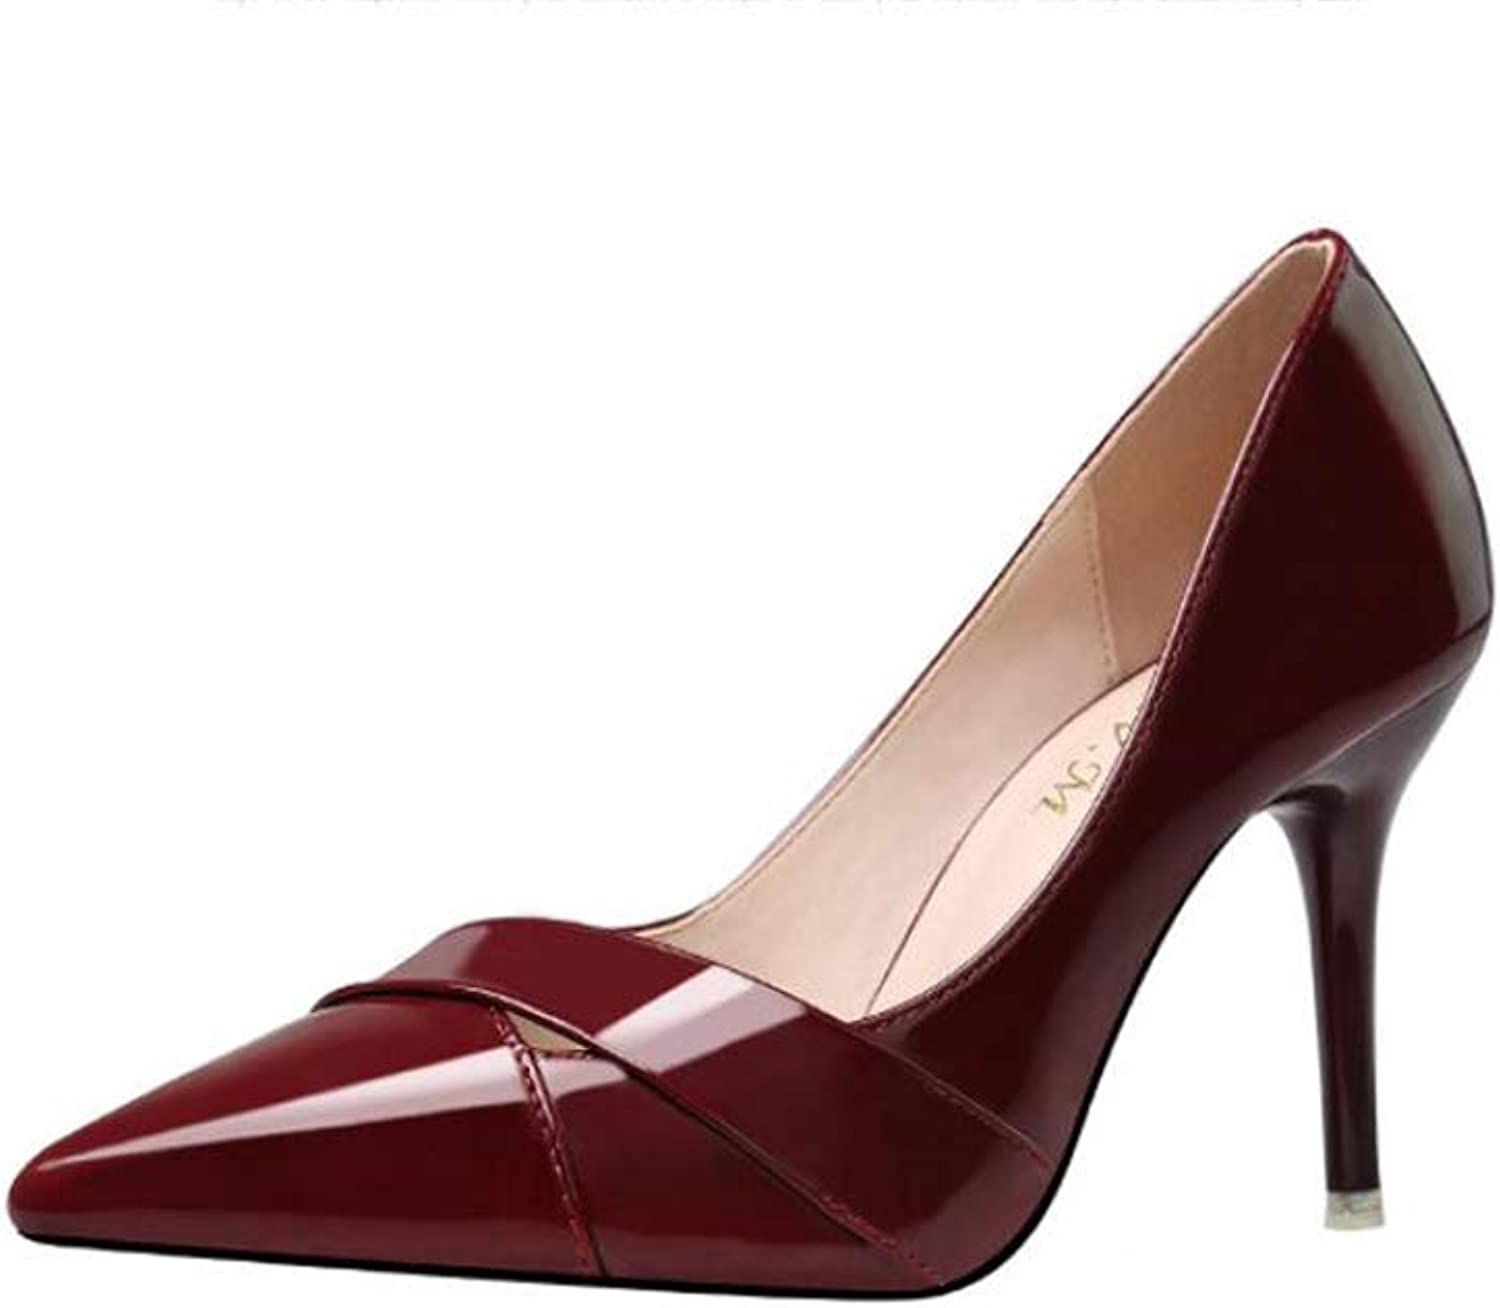 Meimeioo Womens Pointed Toe High Heels Slip On Stiletto Pumps Wedding Party Basic shoes